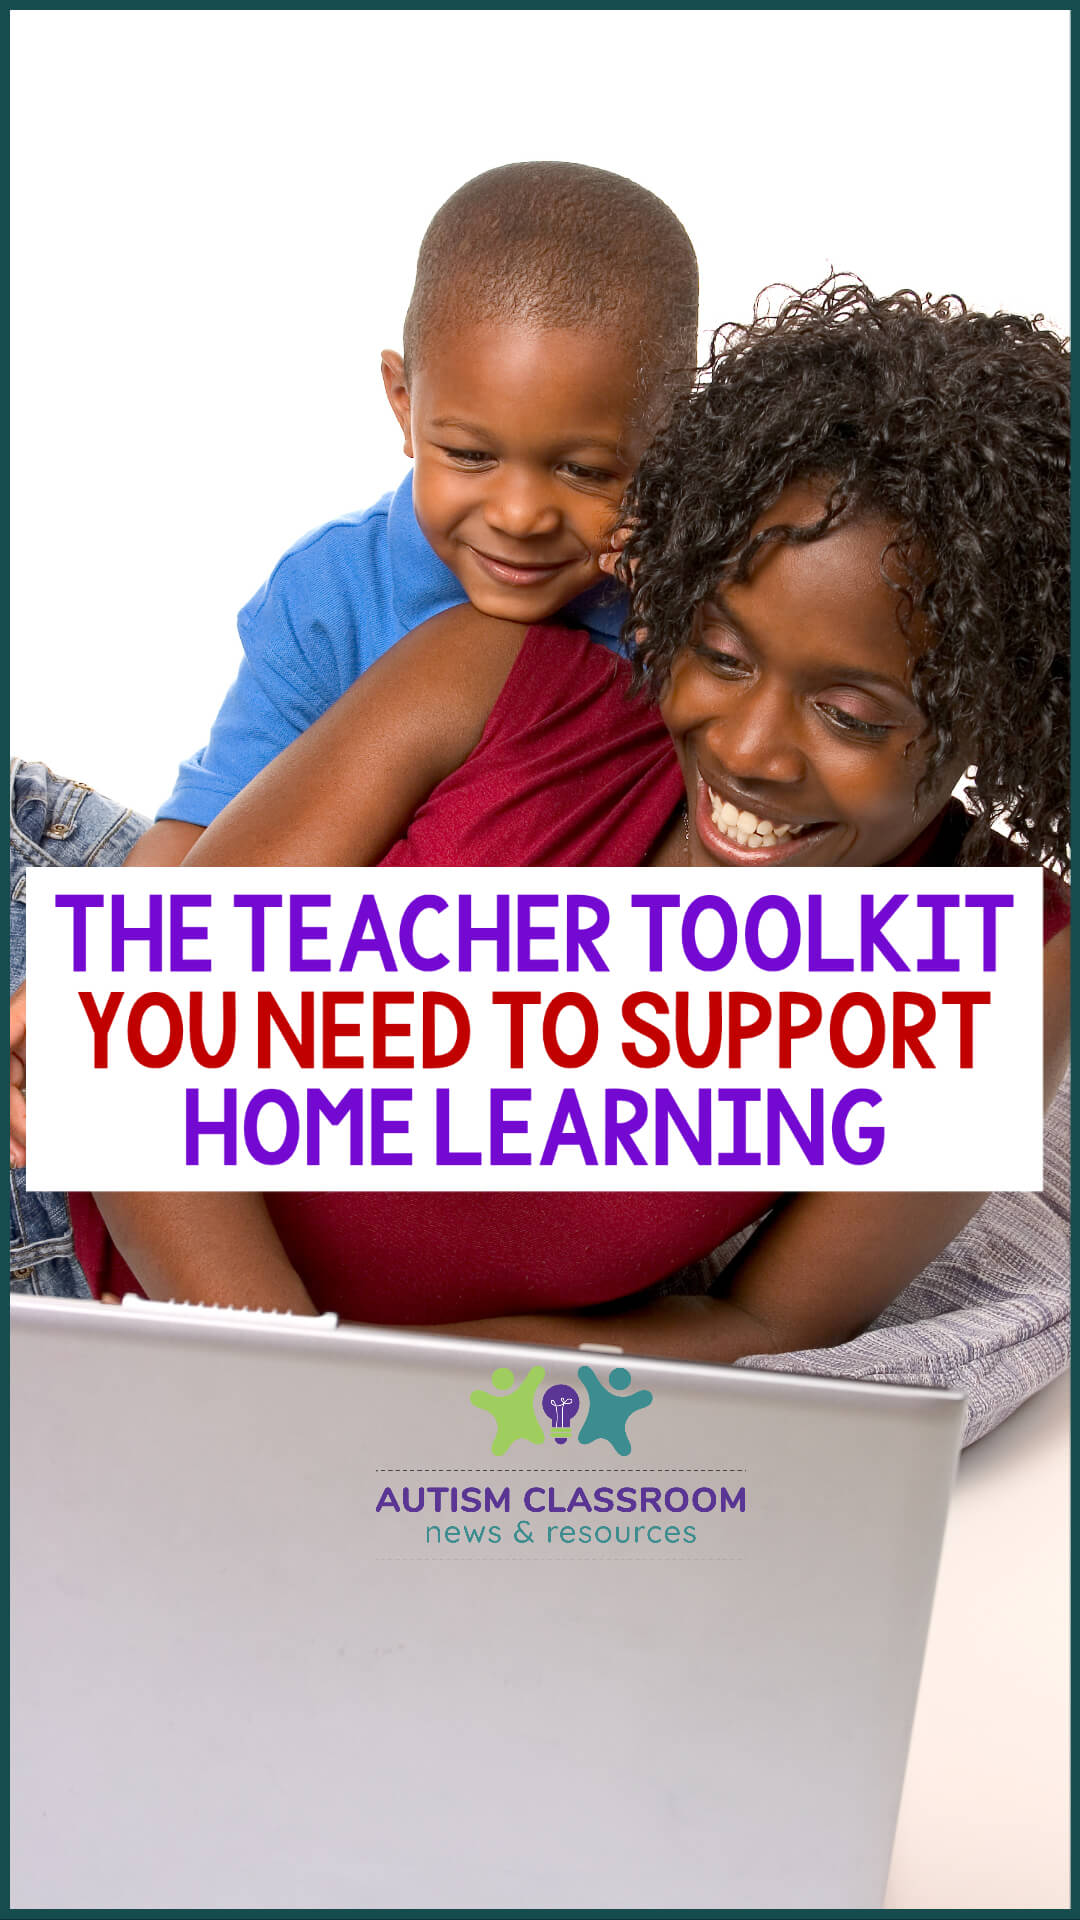 The Teacher Toolkit You Need to Support Home Learning